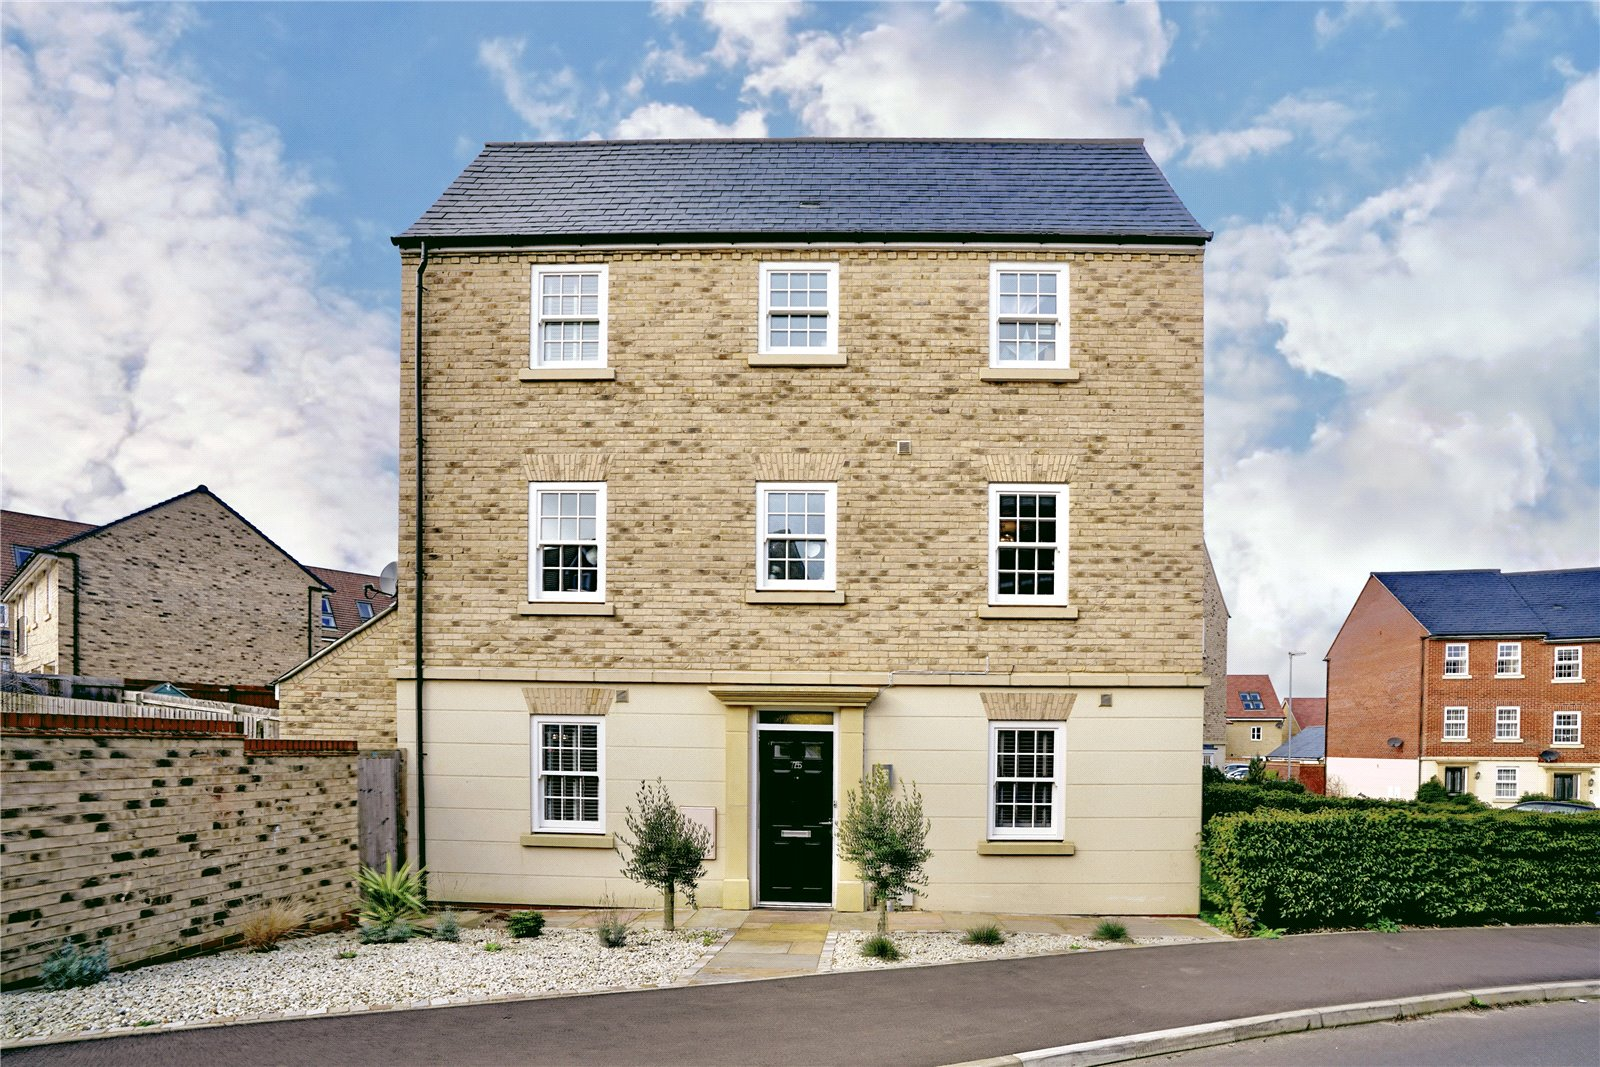 4 bed house for sale in Papworth Everard, CB23 3AB, CB23